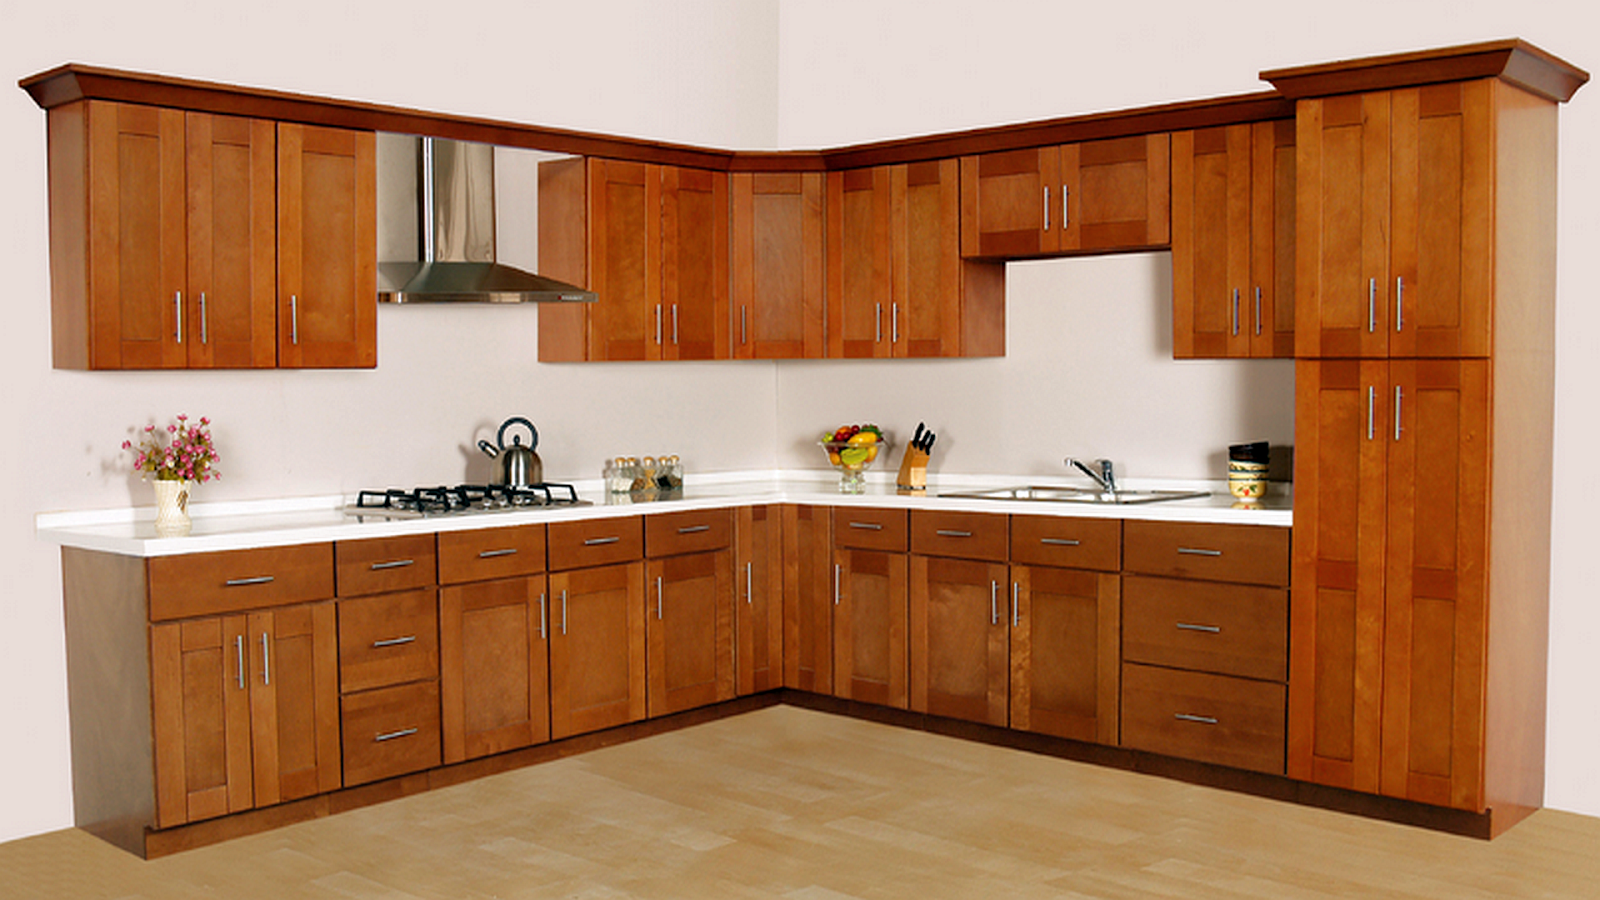 Free 3d Kitchen Cabinet Design Software Inspirational 3d Kitchen Cabinet Design Svm Houses